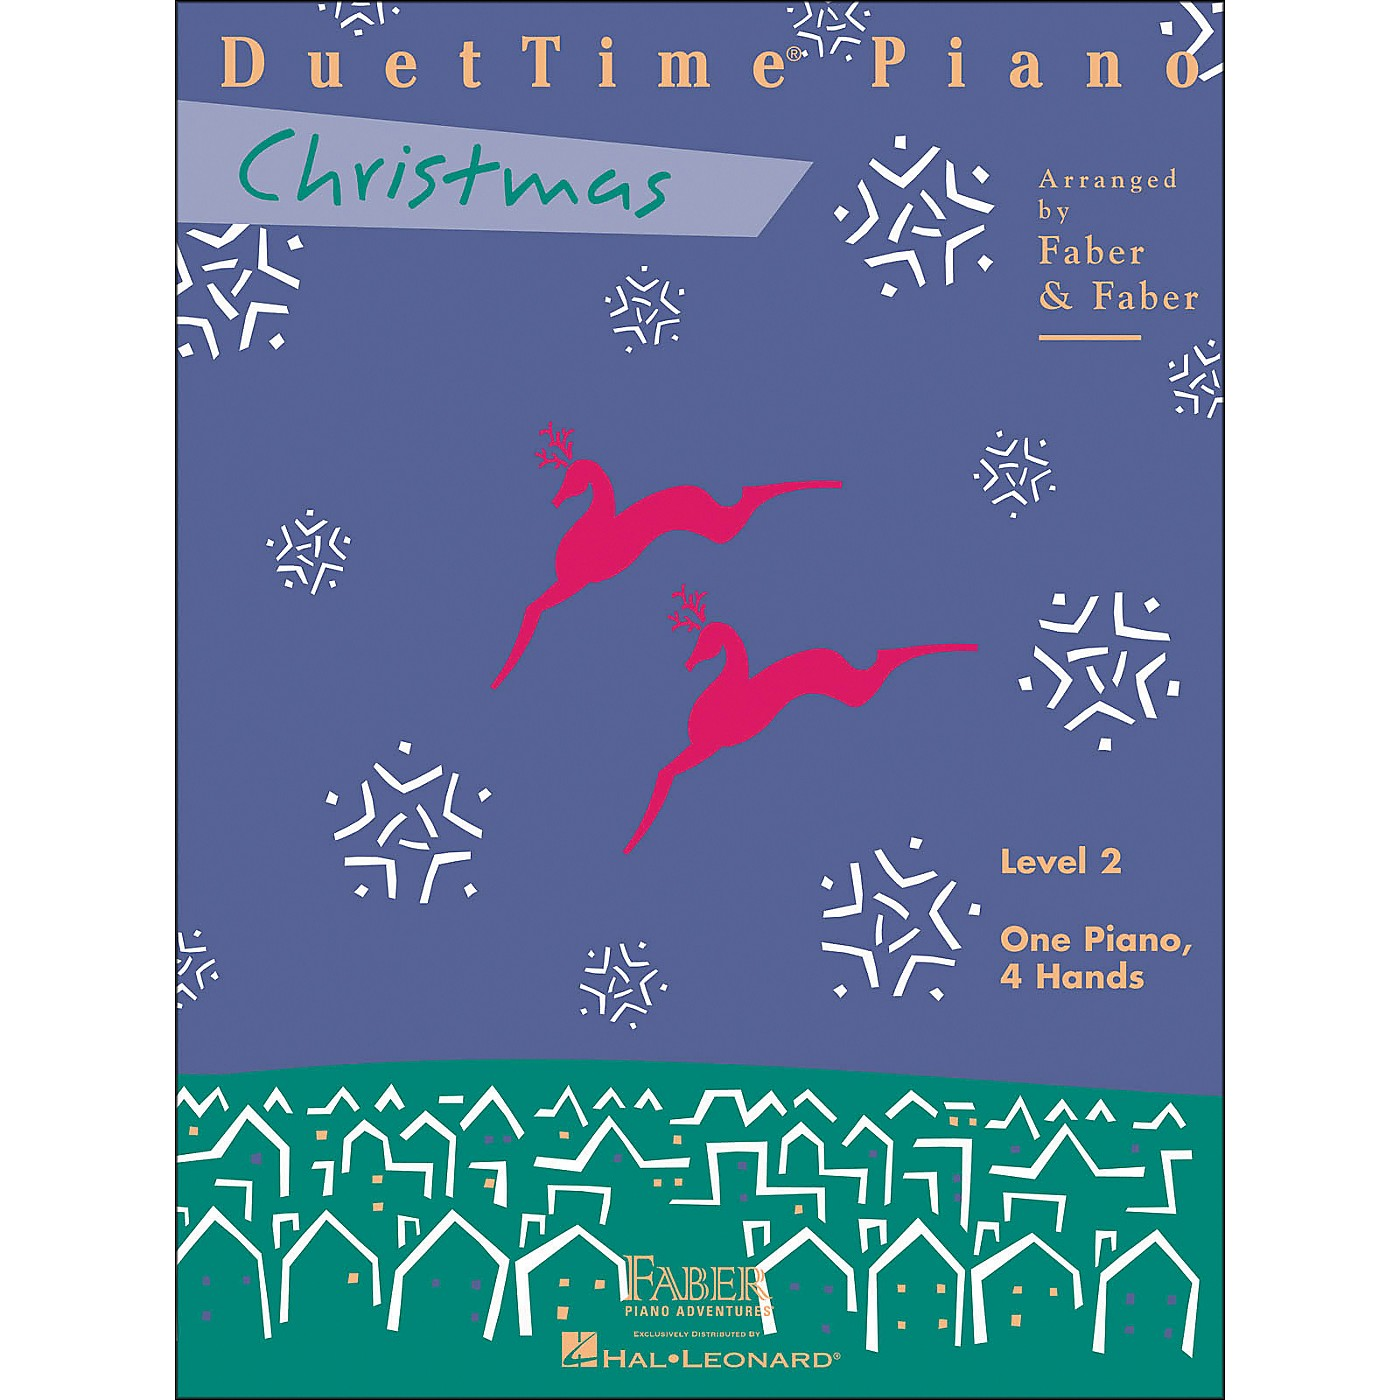 Faber Piano Adventures Duettime Piano Christmas Level 2 One Piano Four Hands - Faber Piano thumbnail